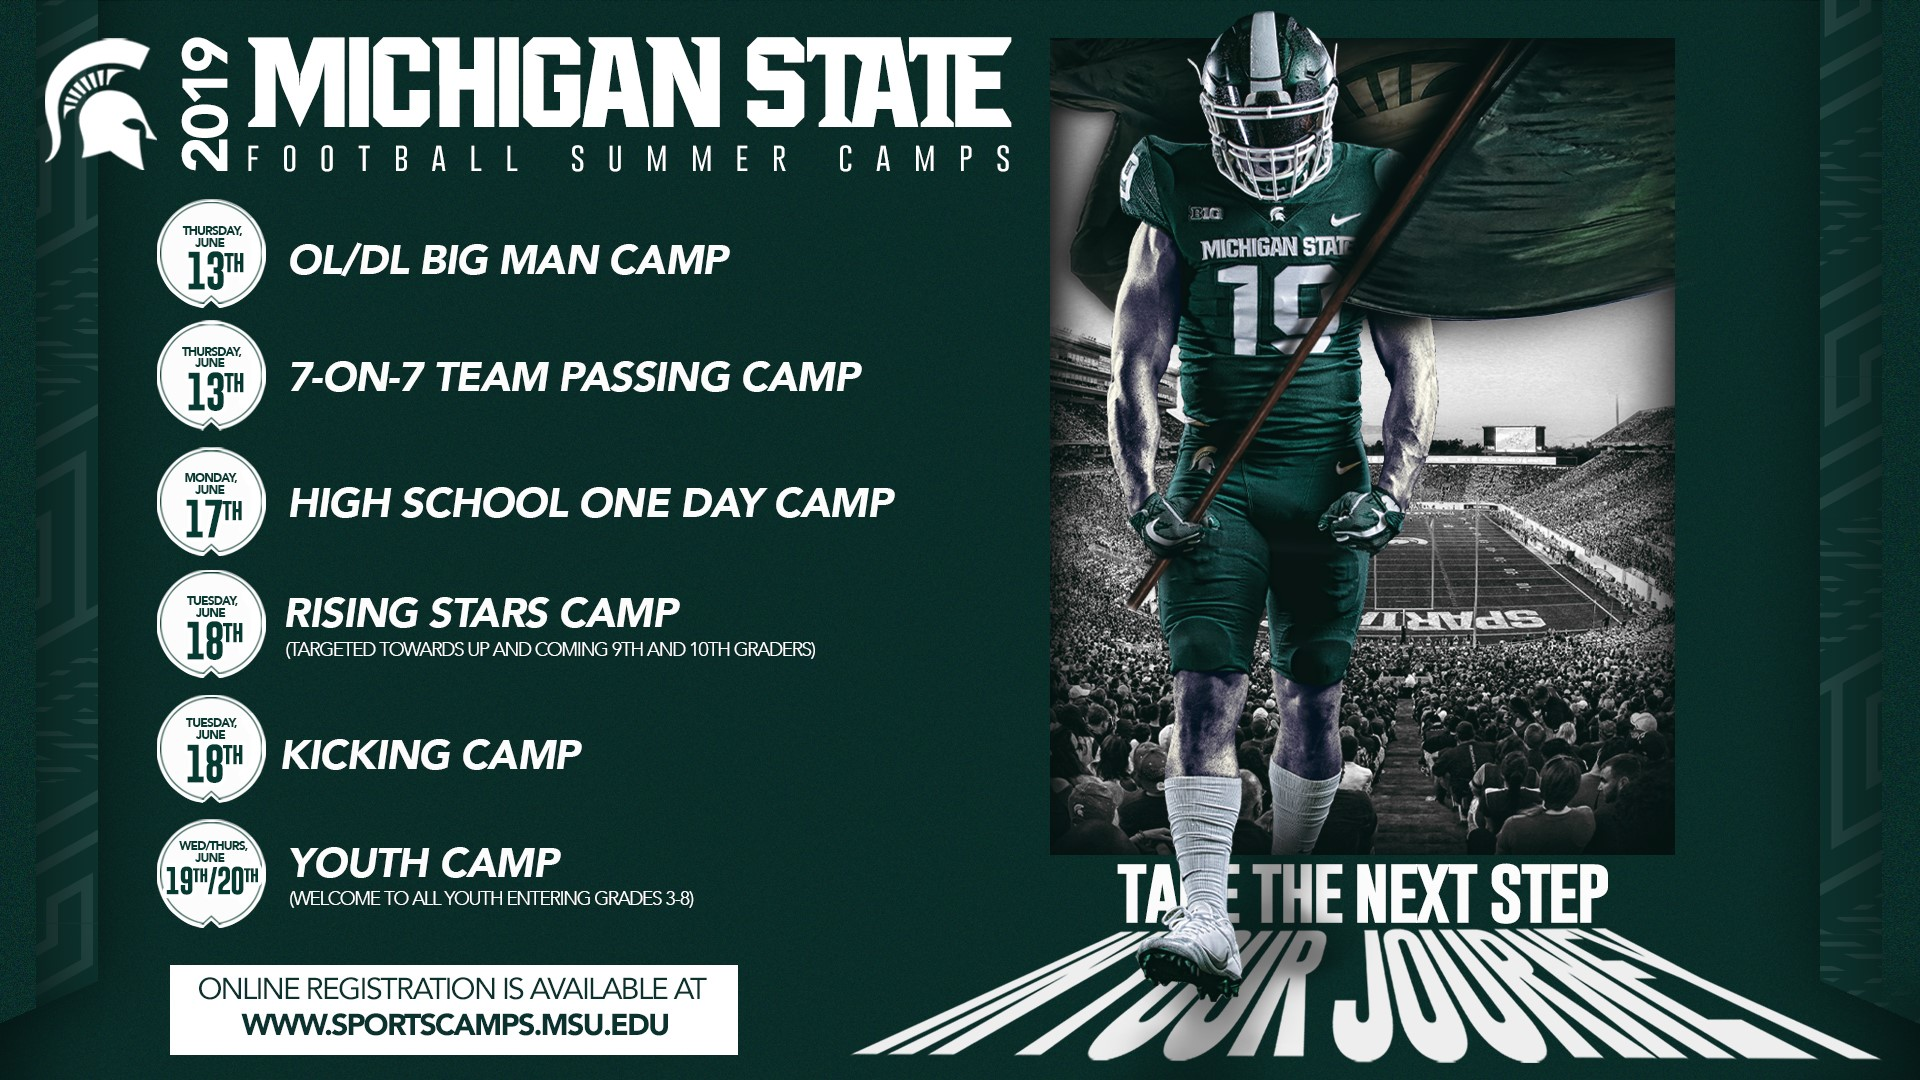 2019 Msu Football Schedule Registration Open for Michigan State Football Summer Camps